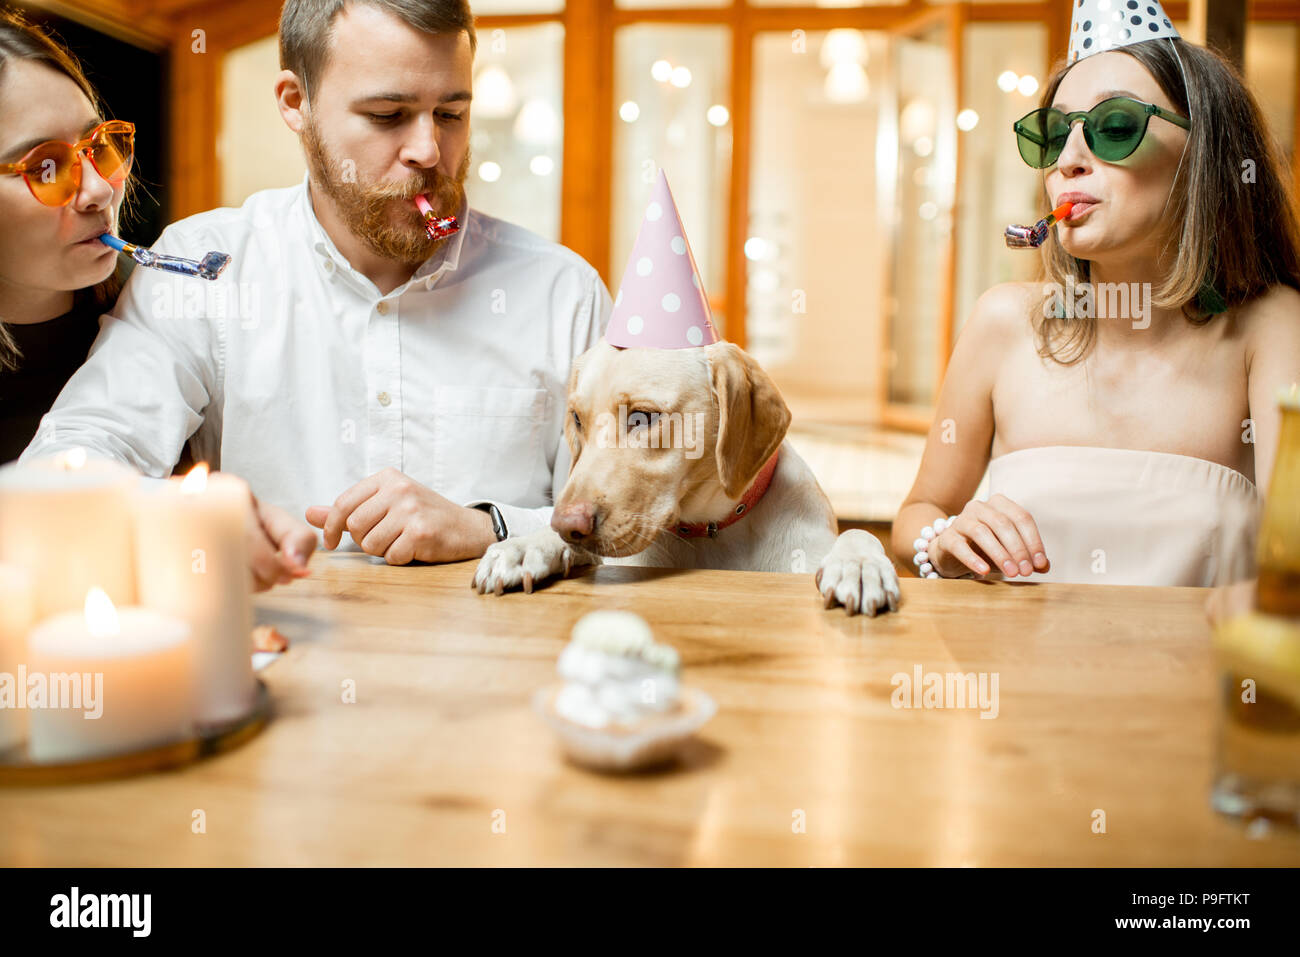 Friends celebrating dog's birthday - Stock Image